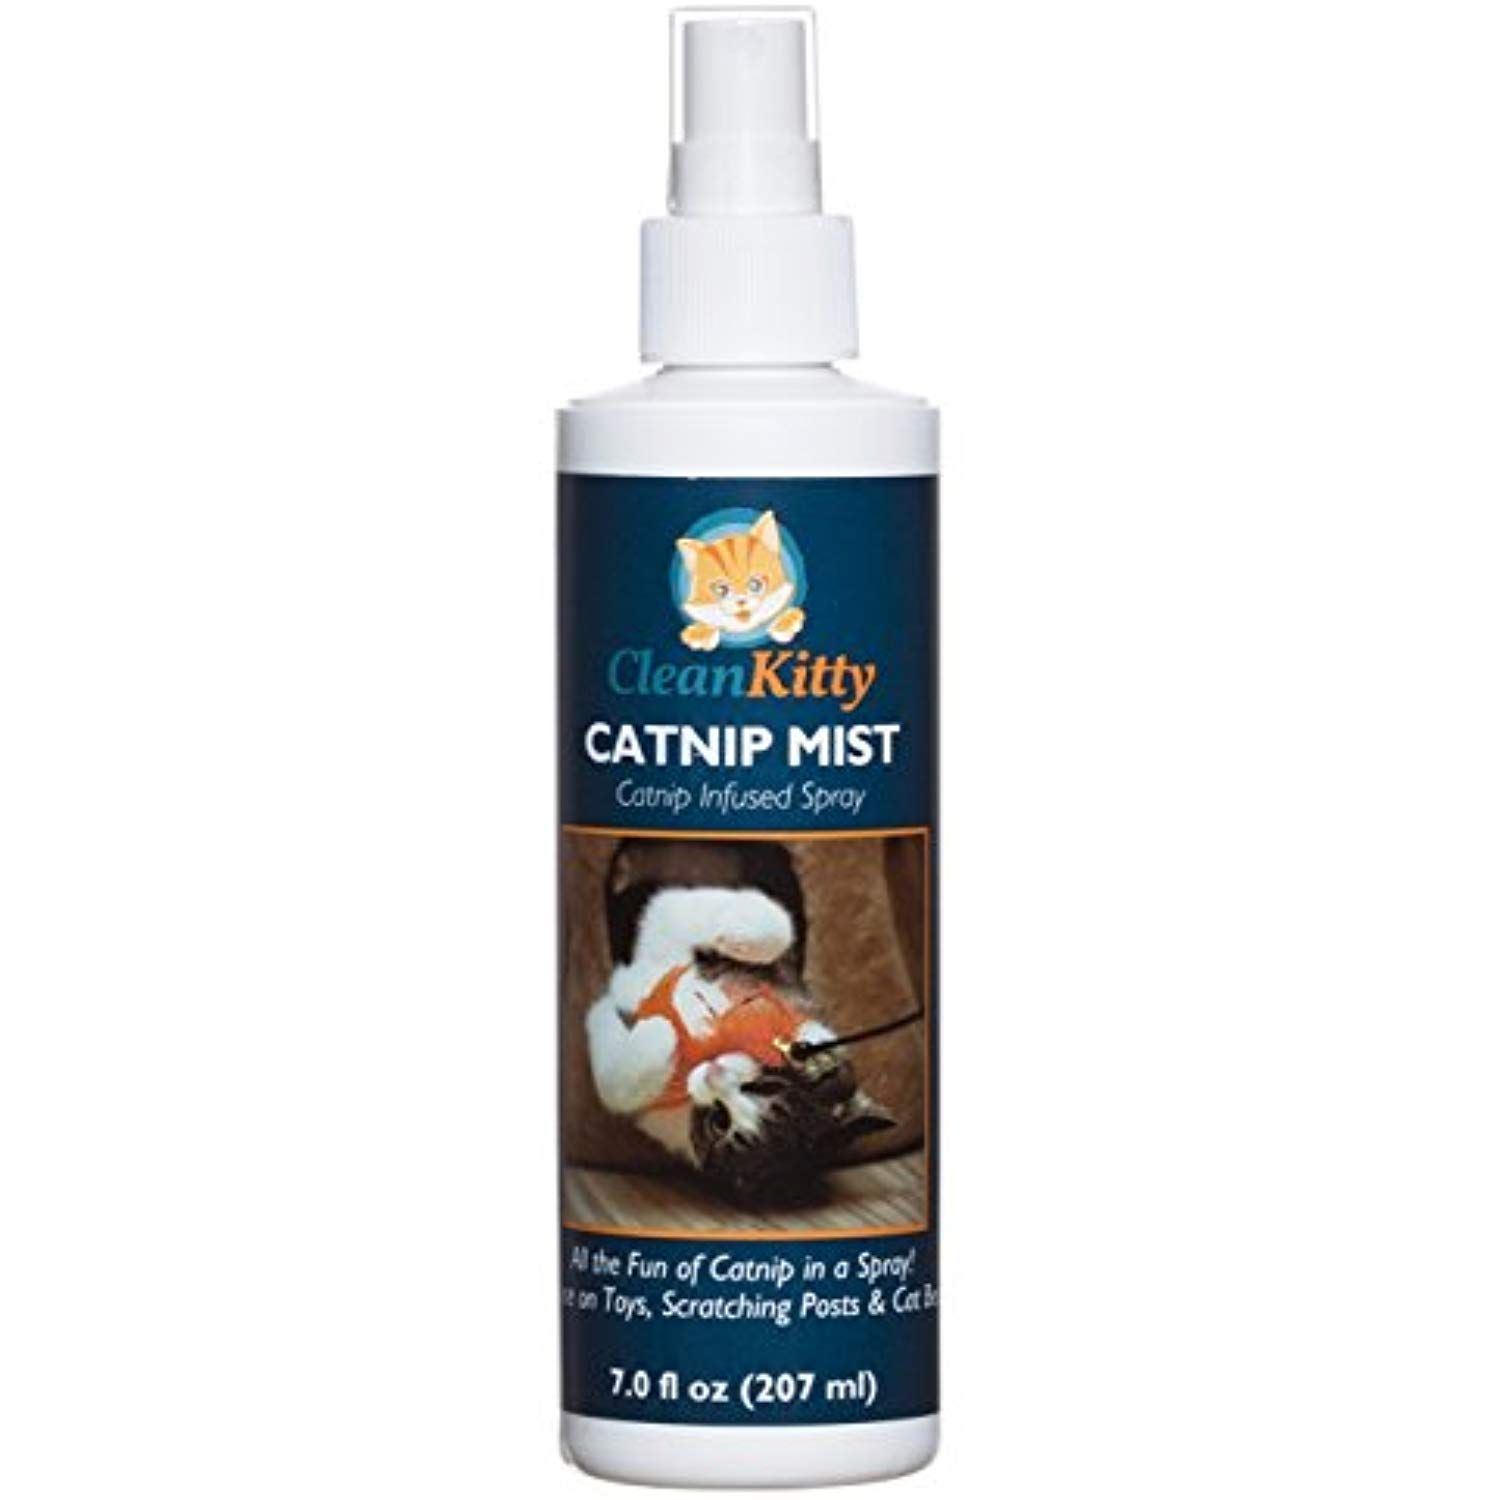 Clean kitty Catnip Makes Cat Go Crazy Mist Infused Spray